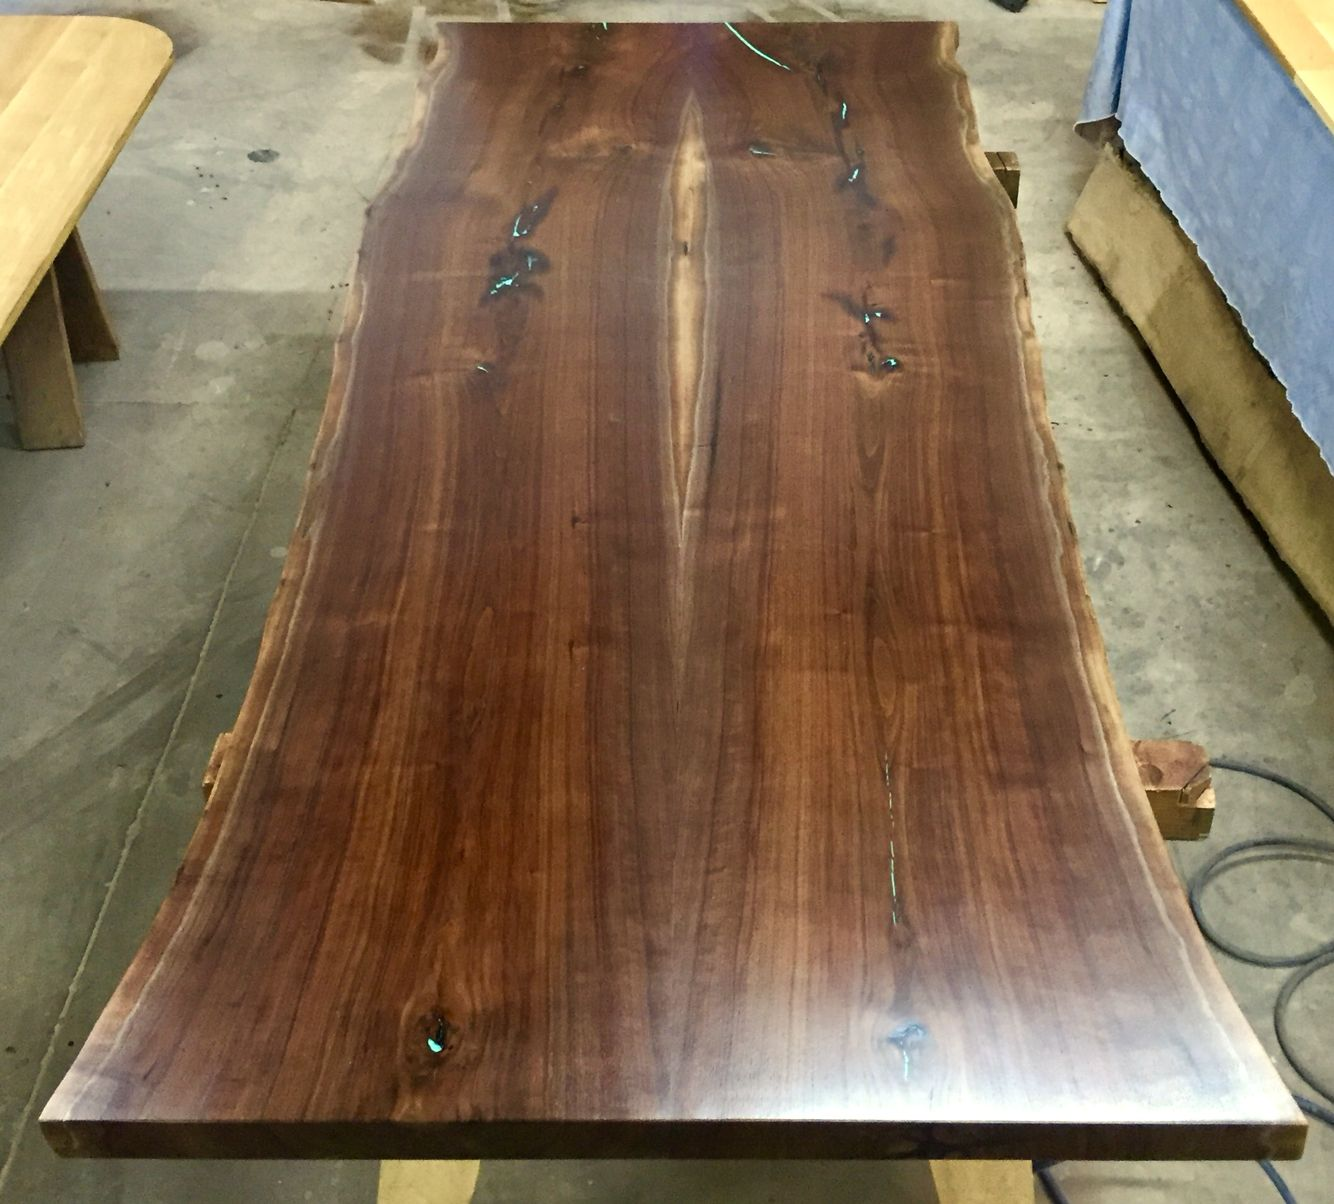 Black Walnut Table Top With Turquoise Fill In Cracks  It Will Have Our  Exclusive